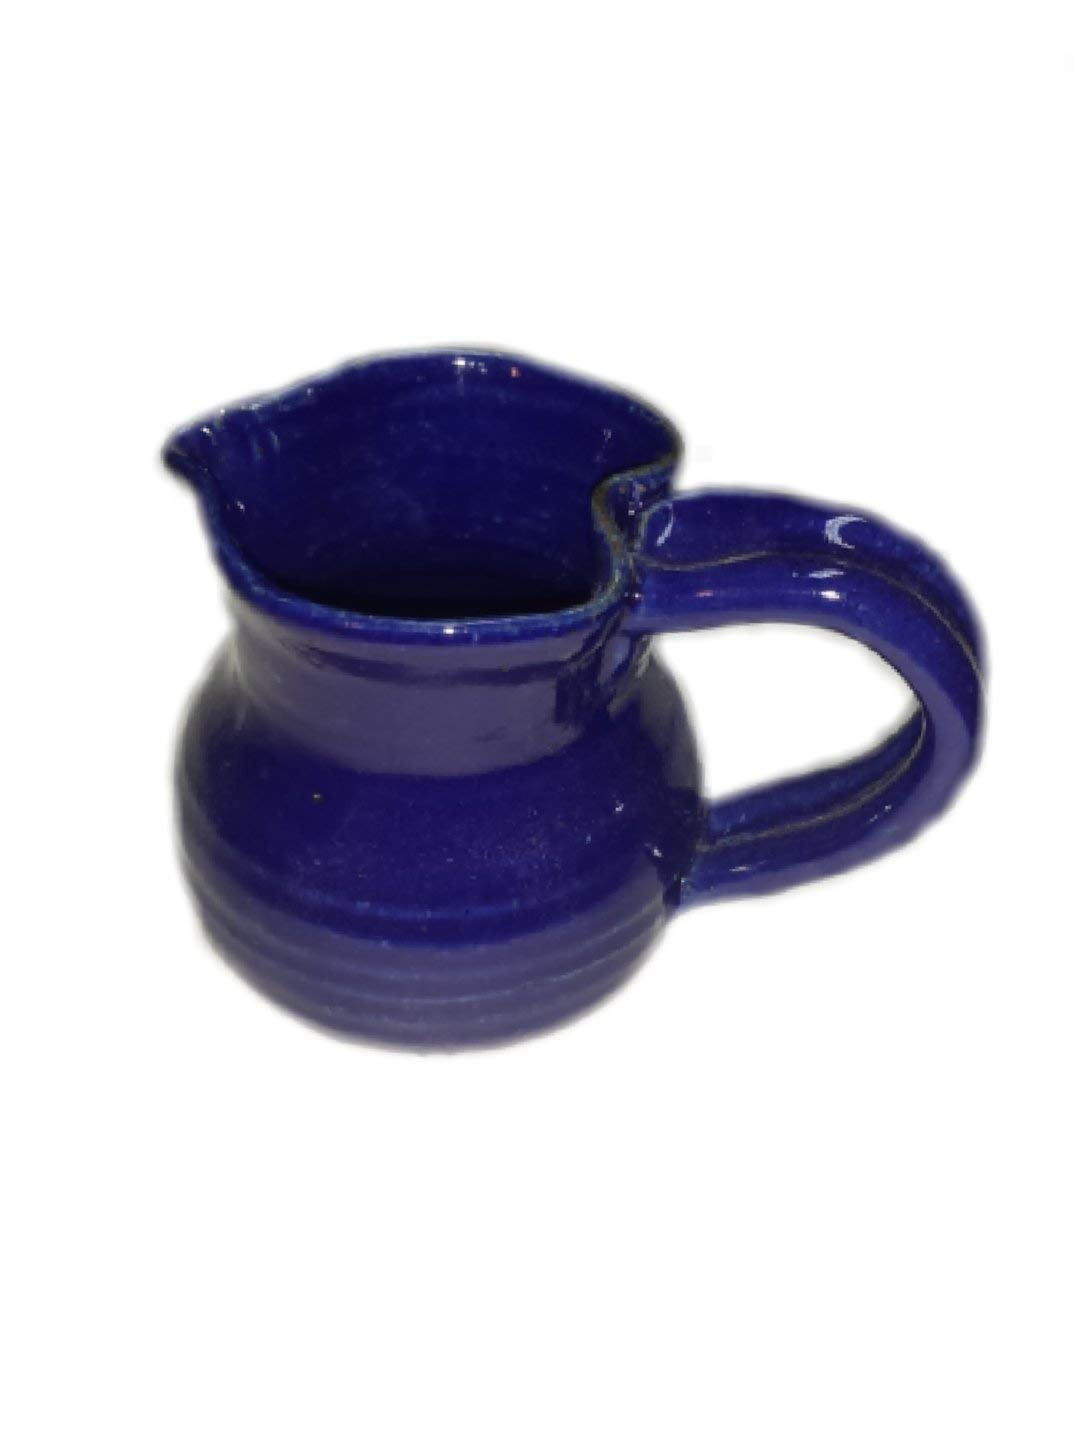 Aunt Chris' Pottery - Hand Made Clay - Gravy Spout Cup (Mug) - Navy Blue Colored Glaze - Vintage Style - Looped Handle - With a Natural Stone Base